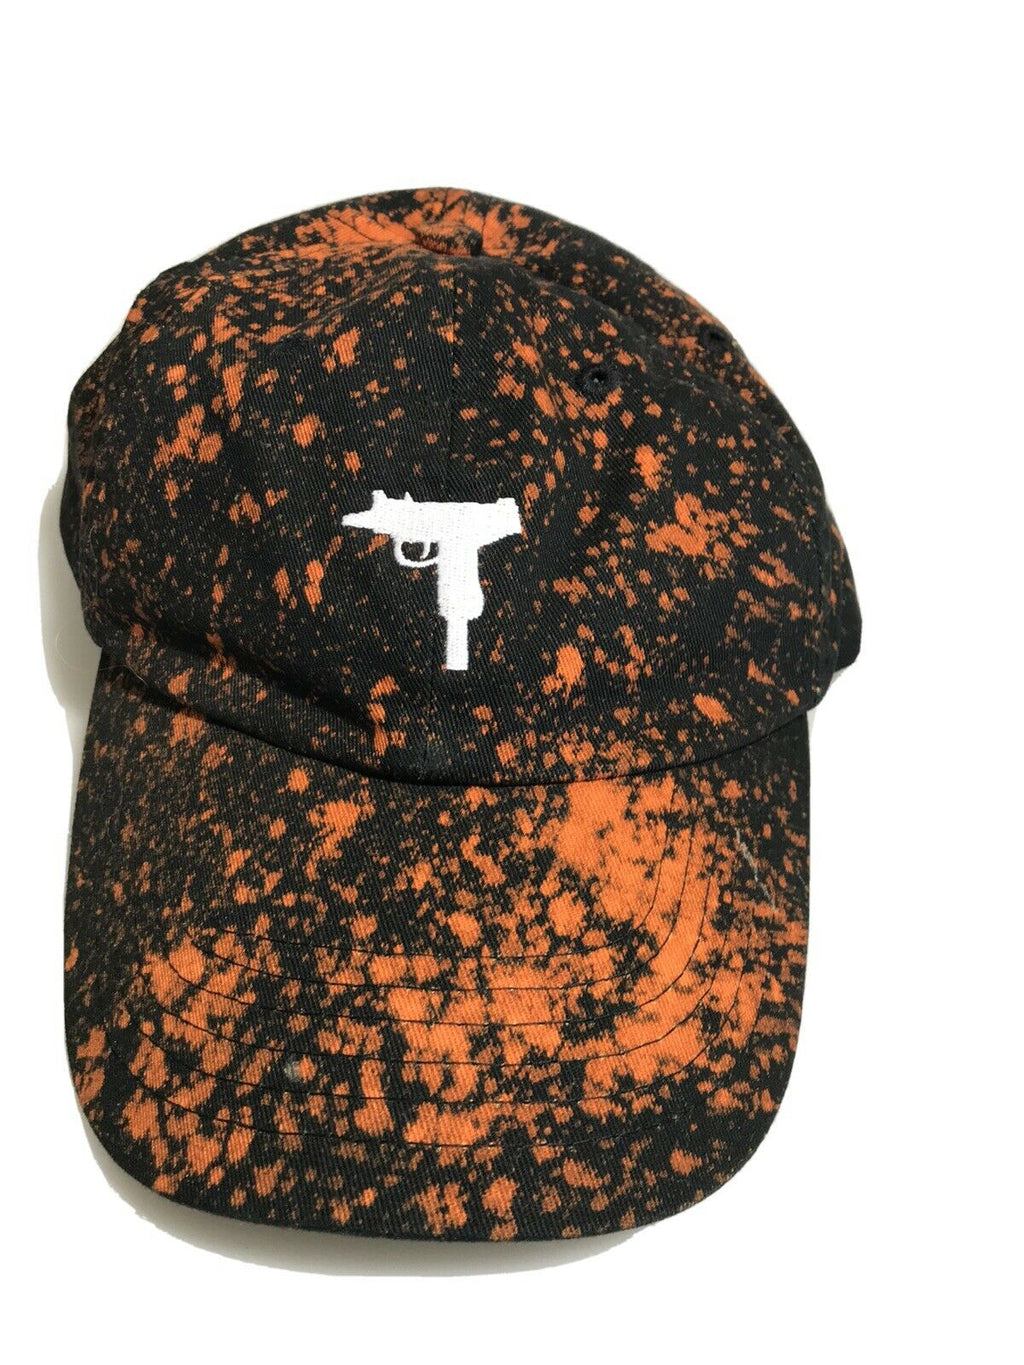 Acid Wash UZI EMBROIDERED POLO BASEBALL CAP Dad Hat Custom Made One Of A Kind